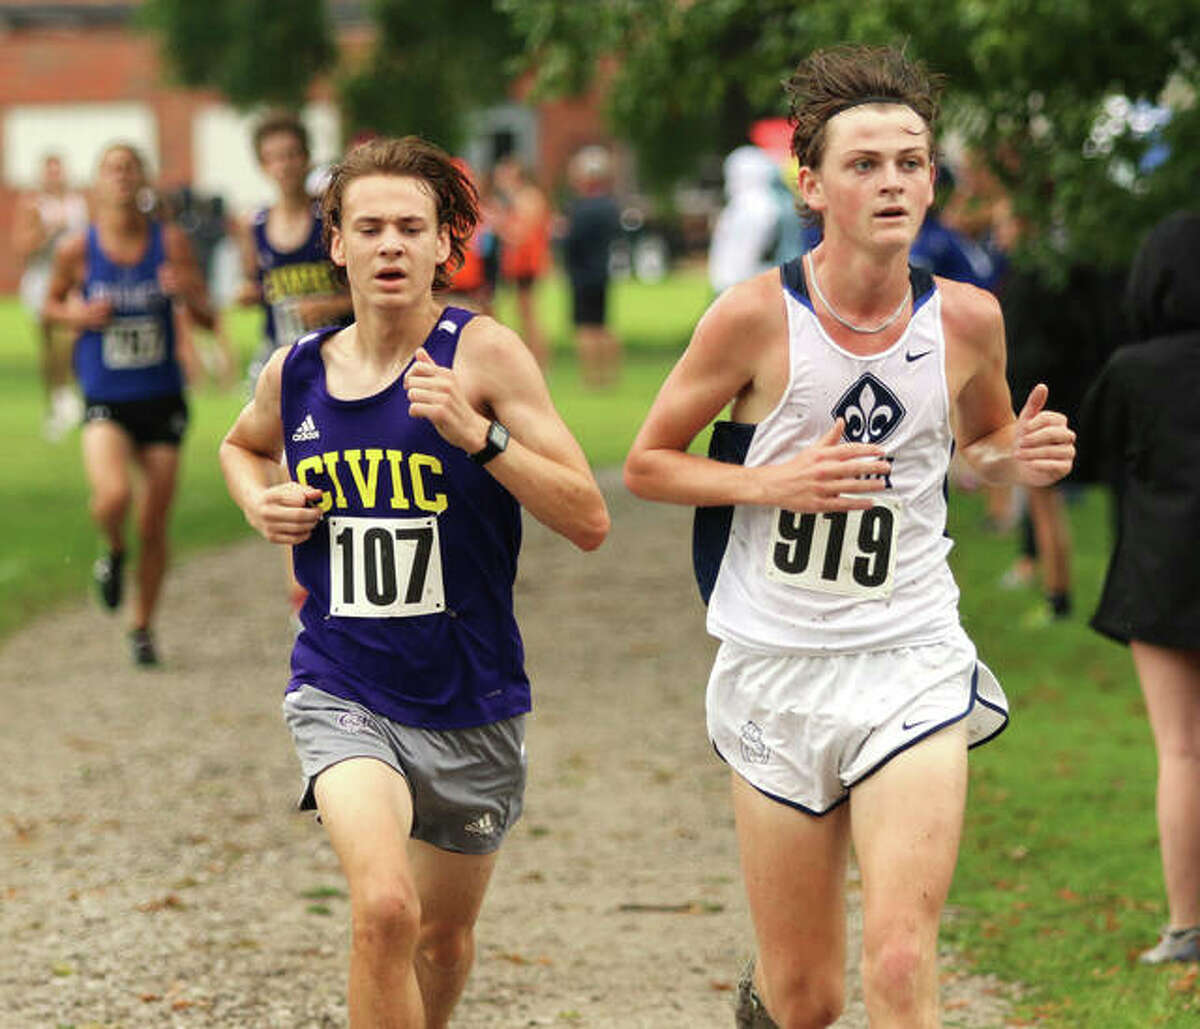 CM's Jackson Collman runs alongside SLUH's Joseph LaBarge (919) in the final 400 meters of the 3-mile cross country race at the Granite City Invite on Saturday morning at Wilson Park. Collman finished 18th, with LaBarge in 20th in a field of 201 boys.